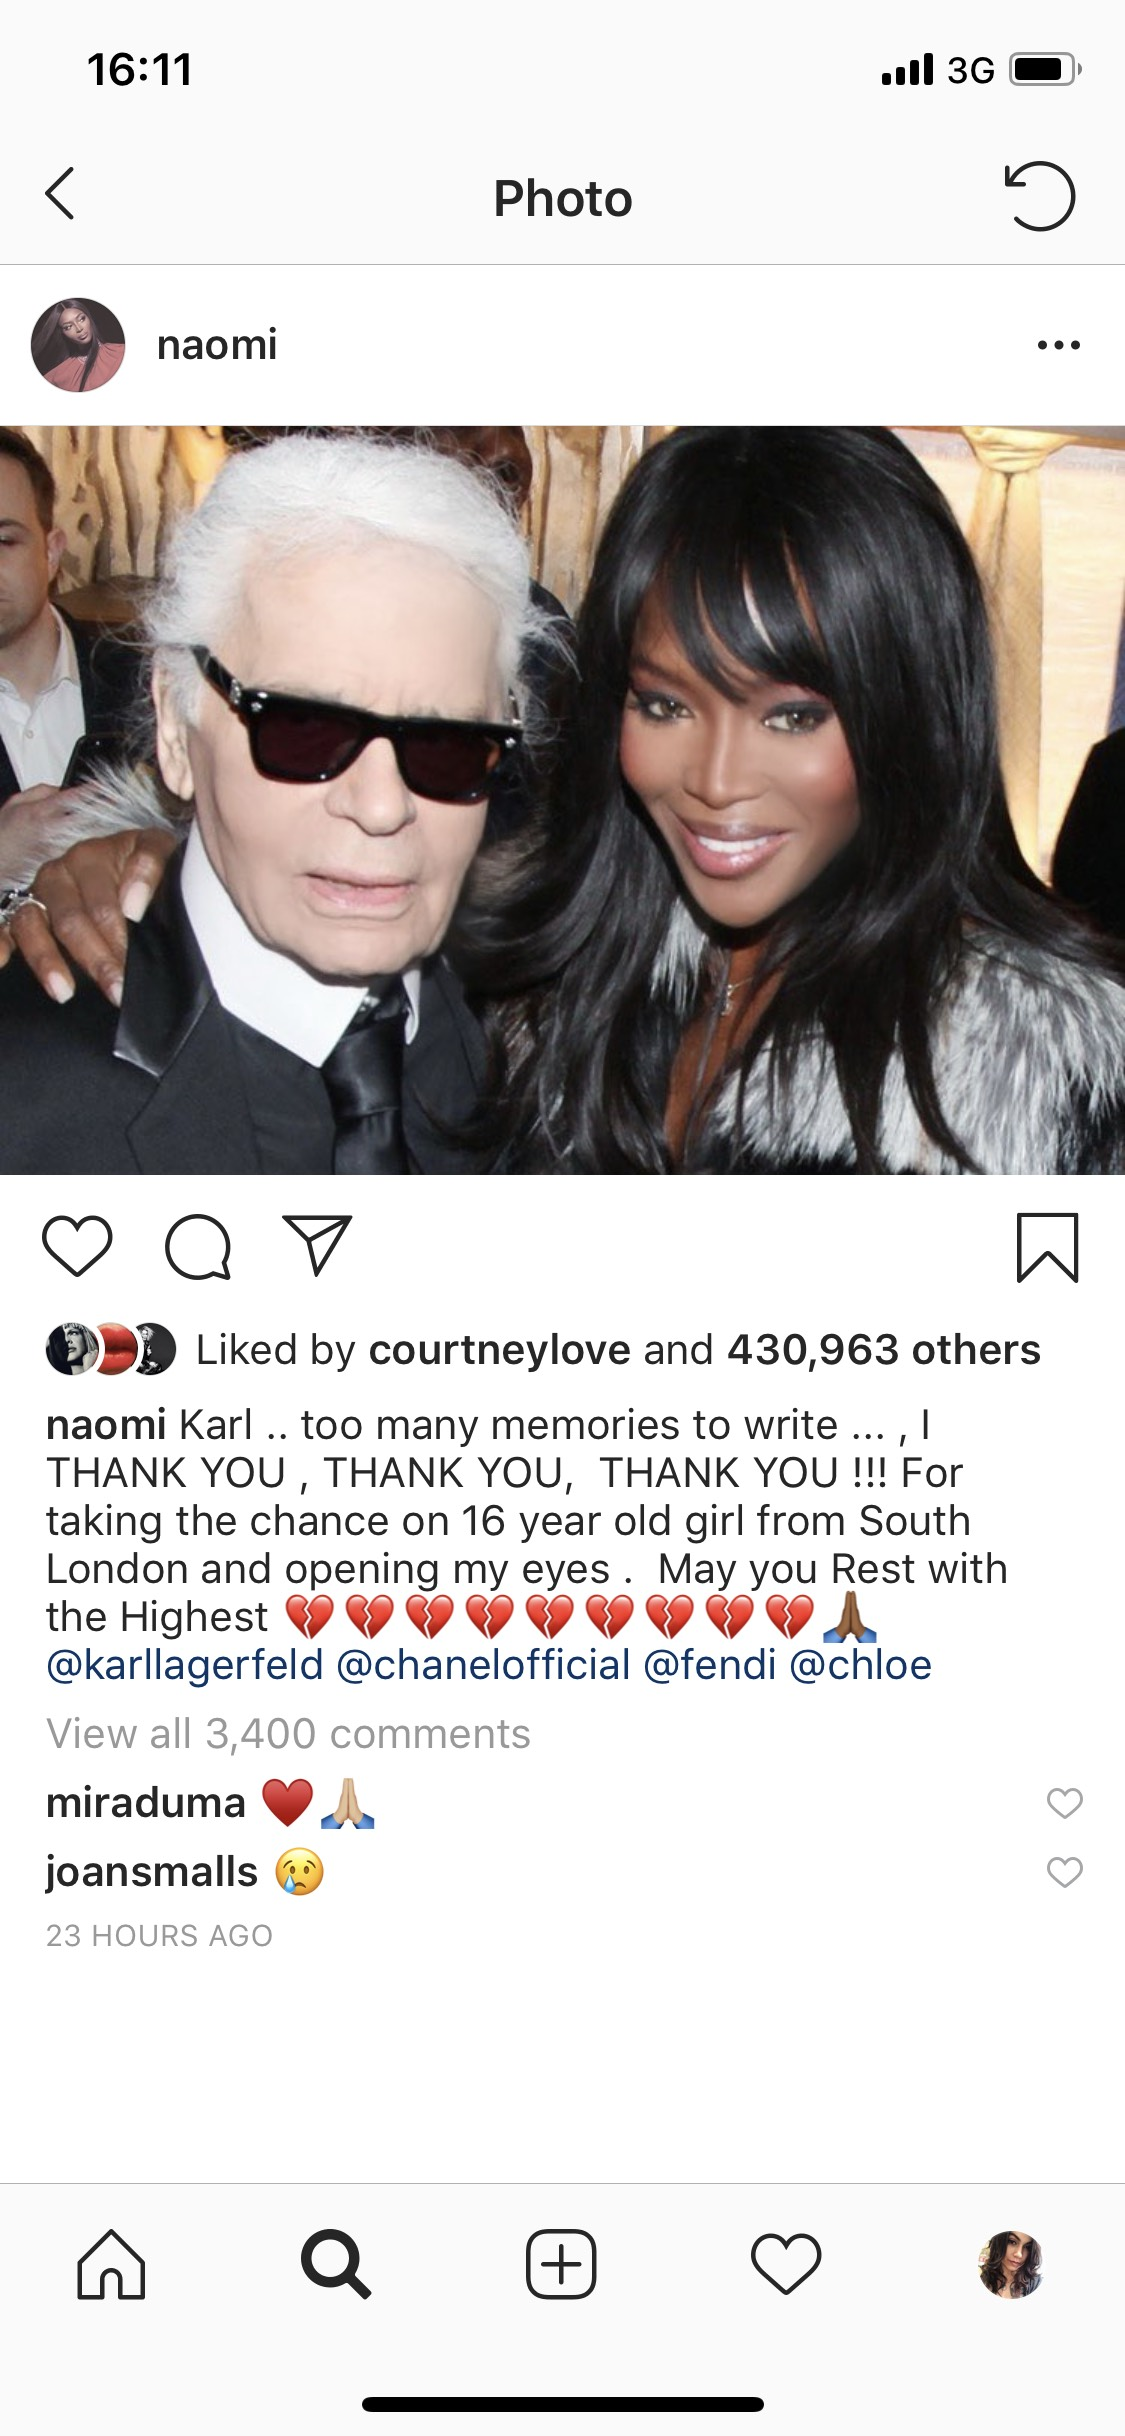 influencers-comment-karl-lagerfeld-death-42.jpg